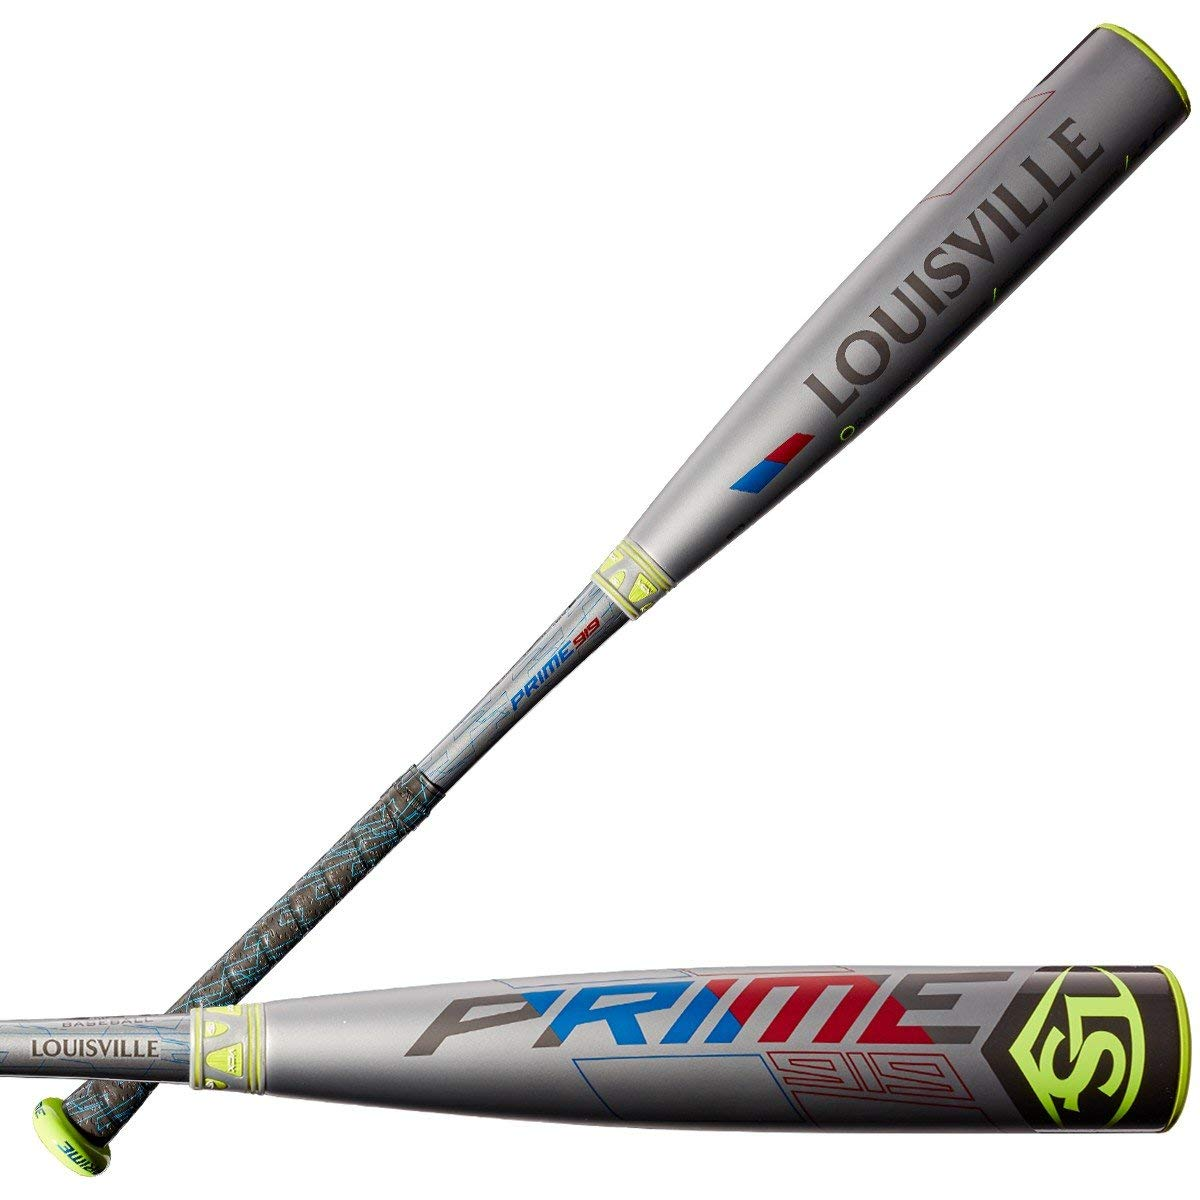 louisville-slugger-2019-prime-919-10-2-5-8-usa-baseball-bat-32-inch-22-oz WTLUBP919B1032  887768730192 Meets USABat standard Approved for play in Little League Baseball AABC